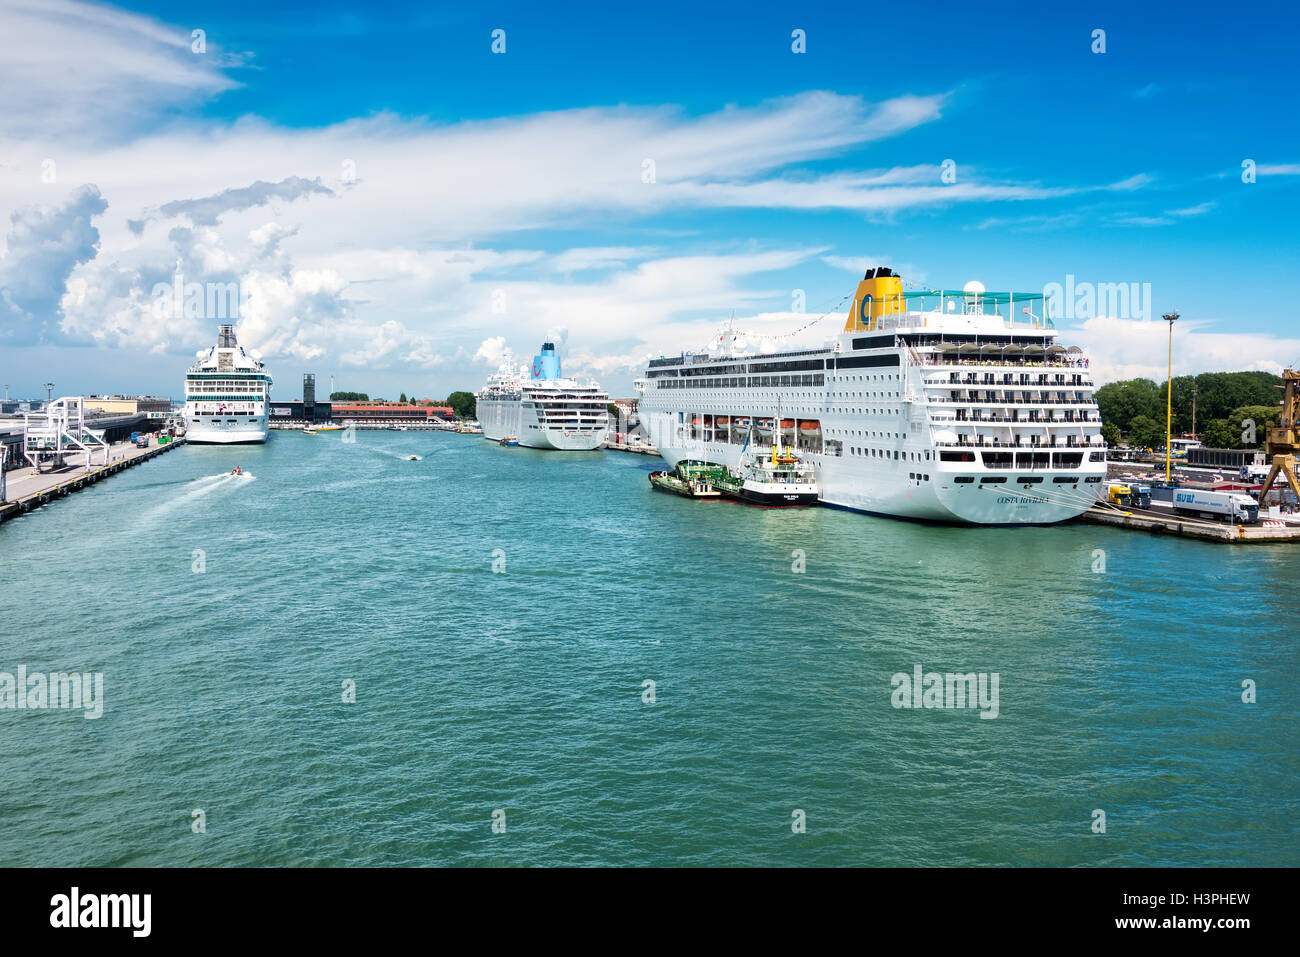 Venice cruise port is one of the busiest in the Mediterranean - Stock Image